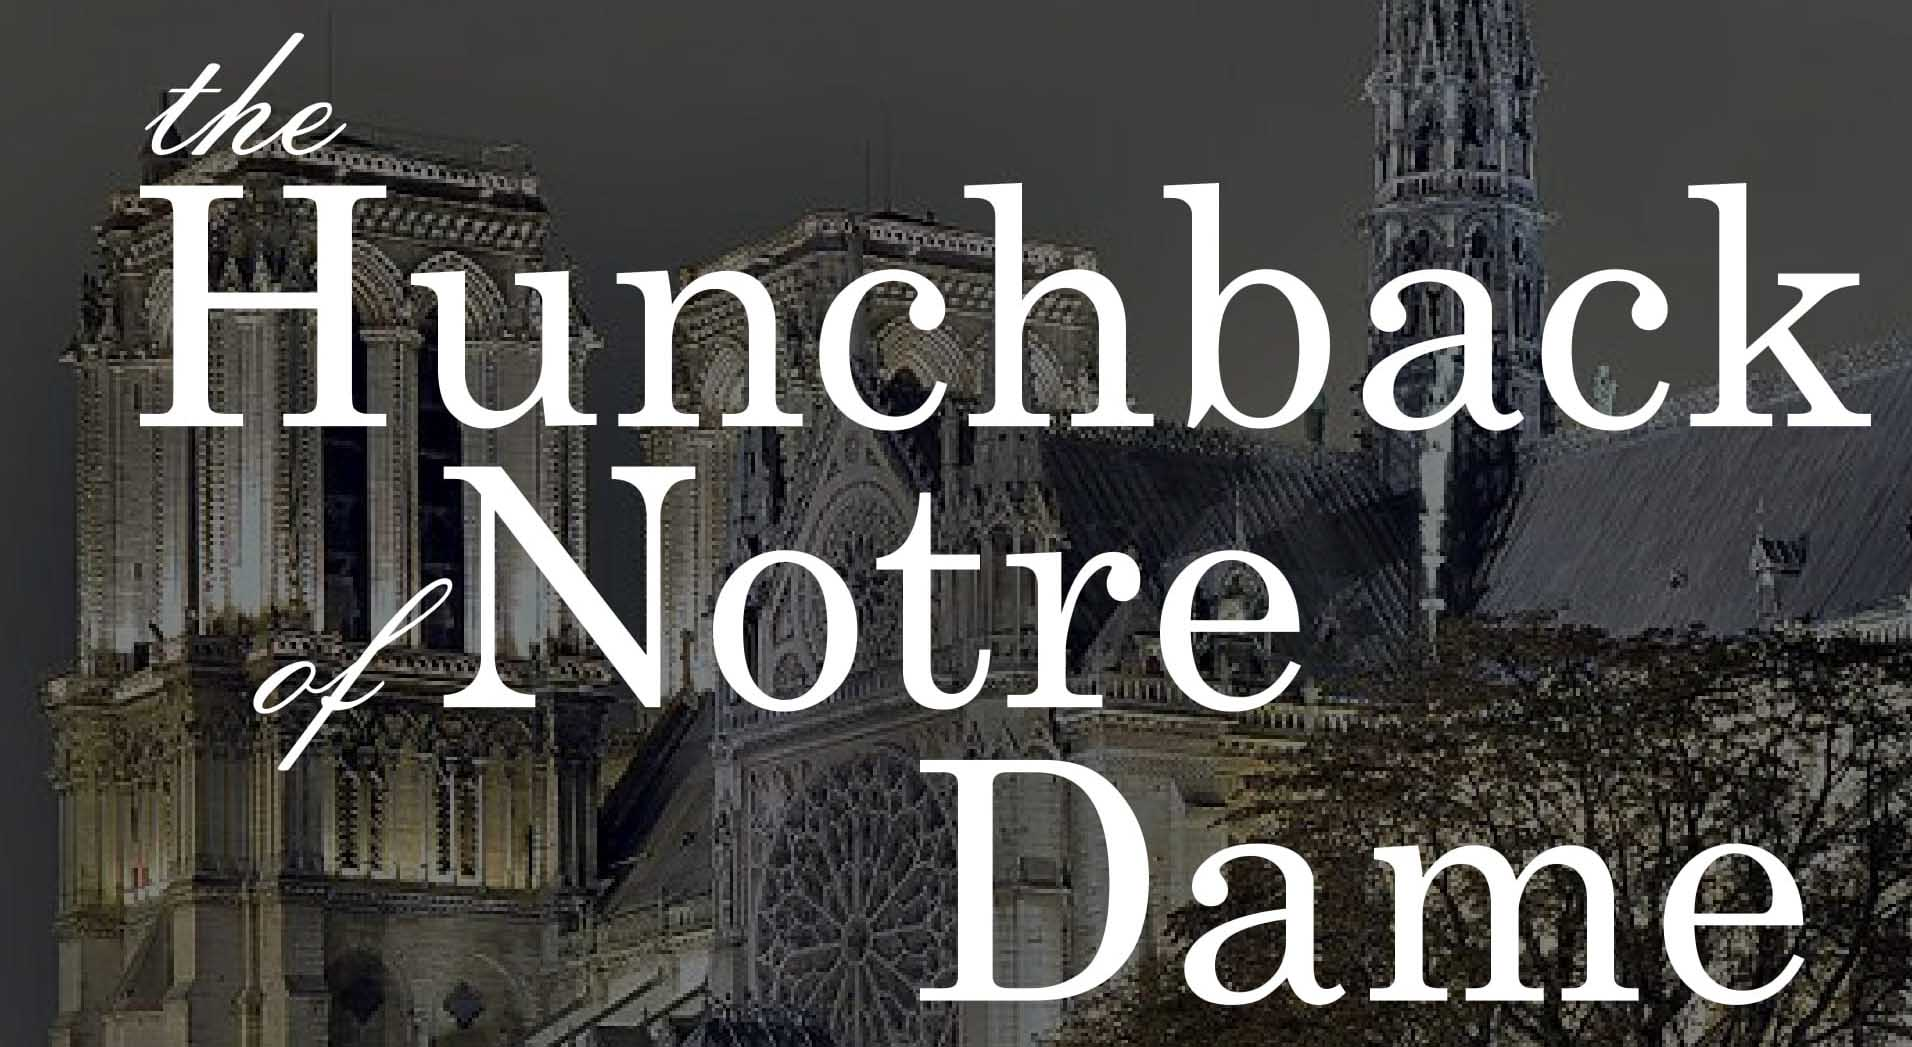 Hunchback of Notre Dame jumps to top of Frances online bestseller list after cathedral fire